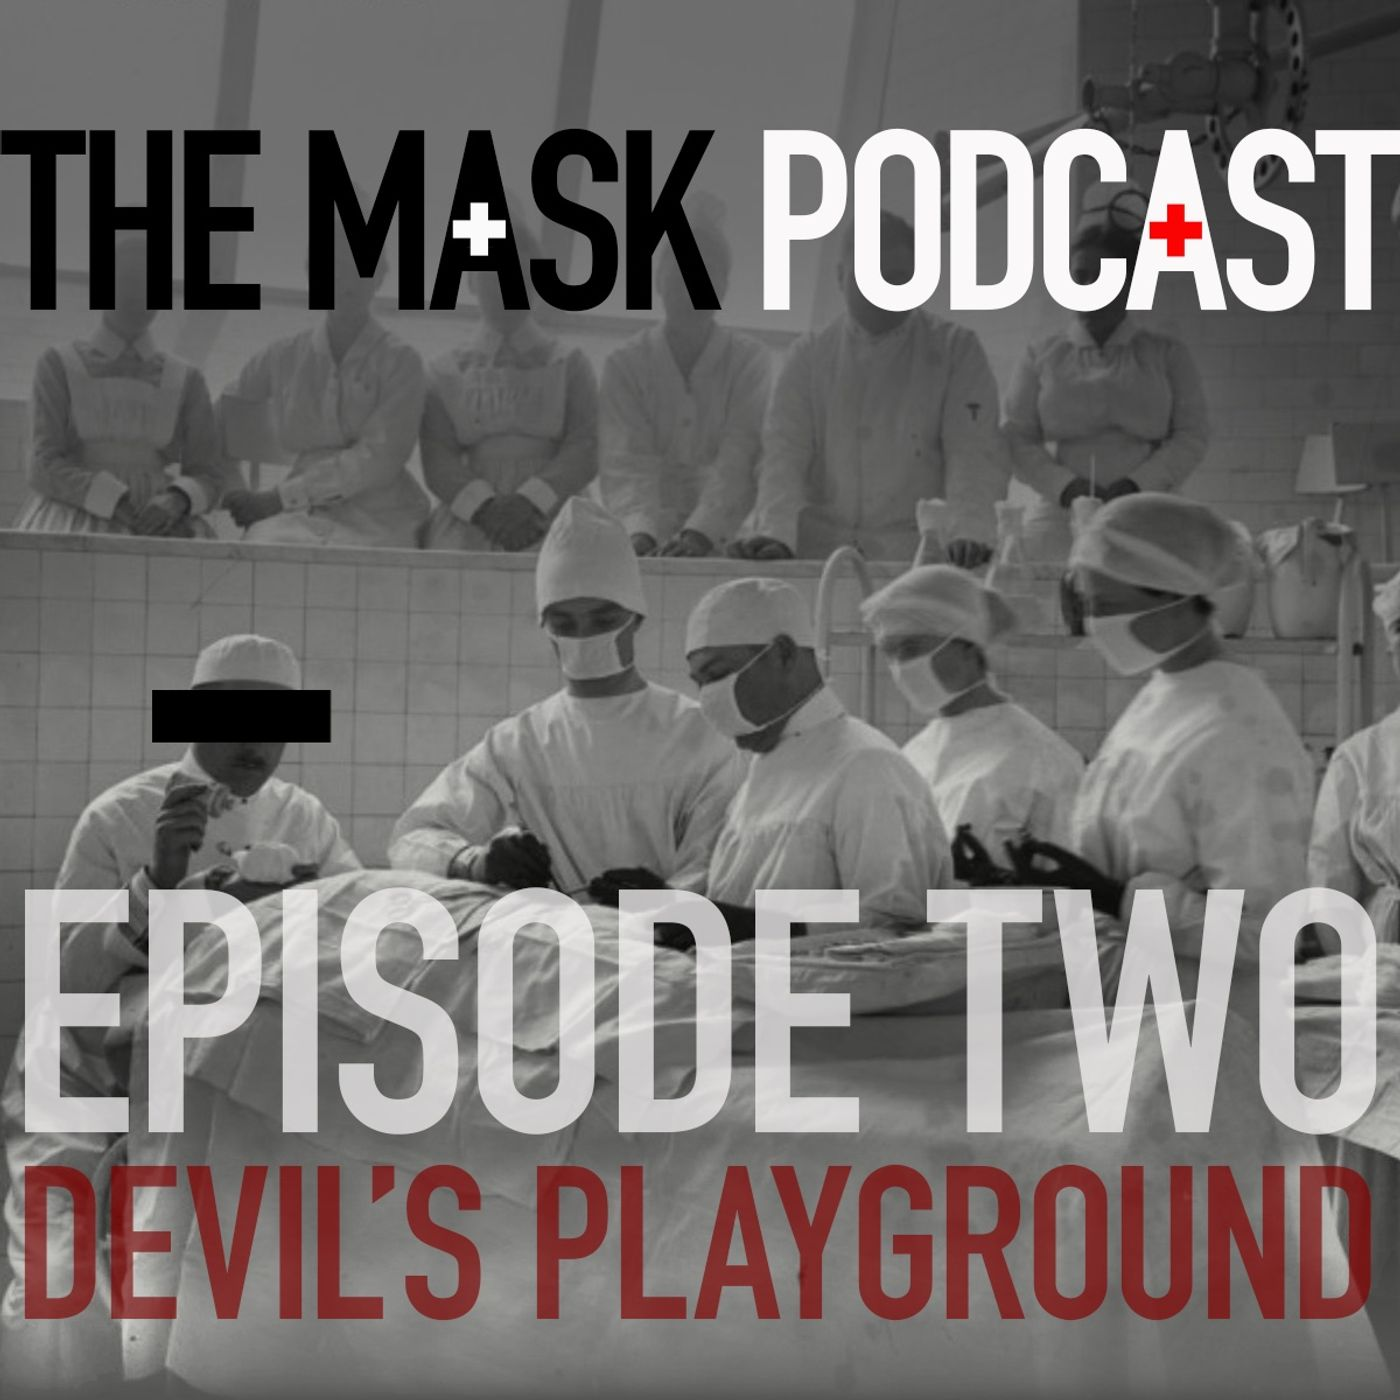 """Ep 2: """"DEVIL'S PLAYGROUND"""" Sgt. Andre - South Eastern City, U.S."""